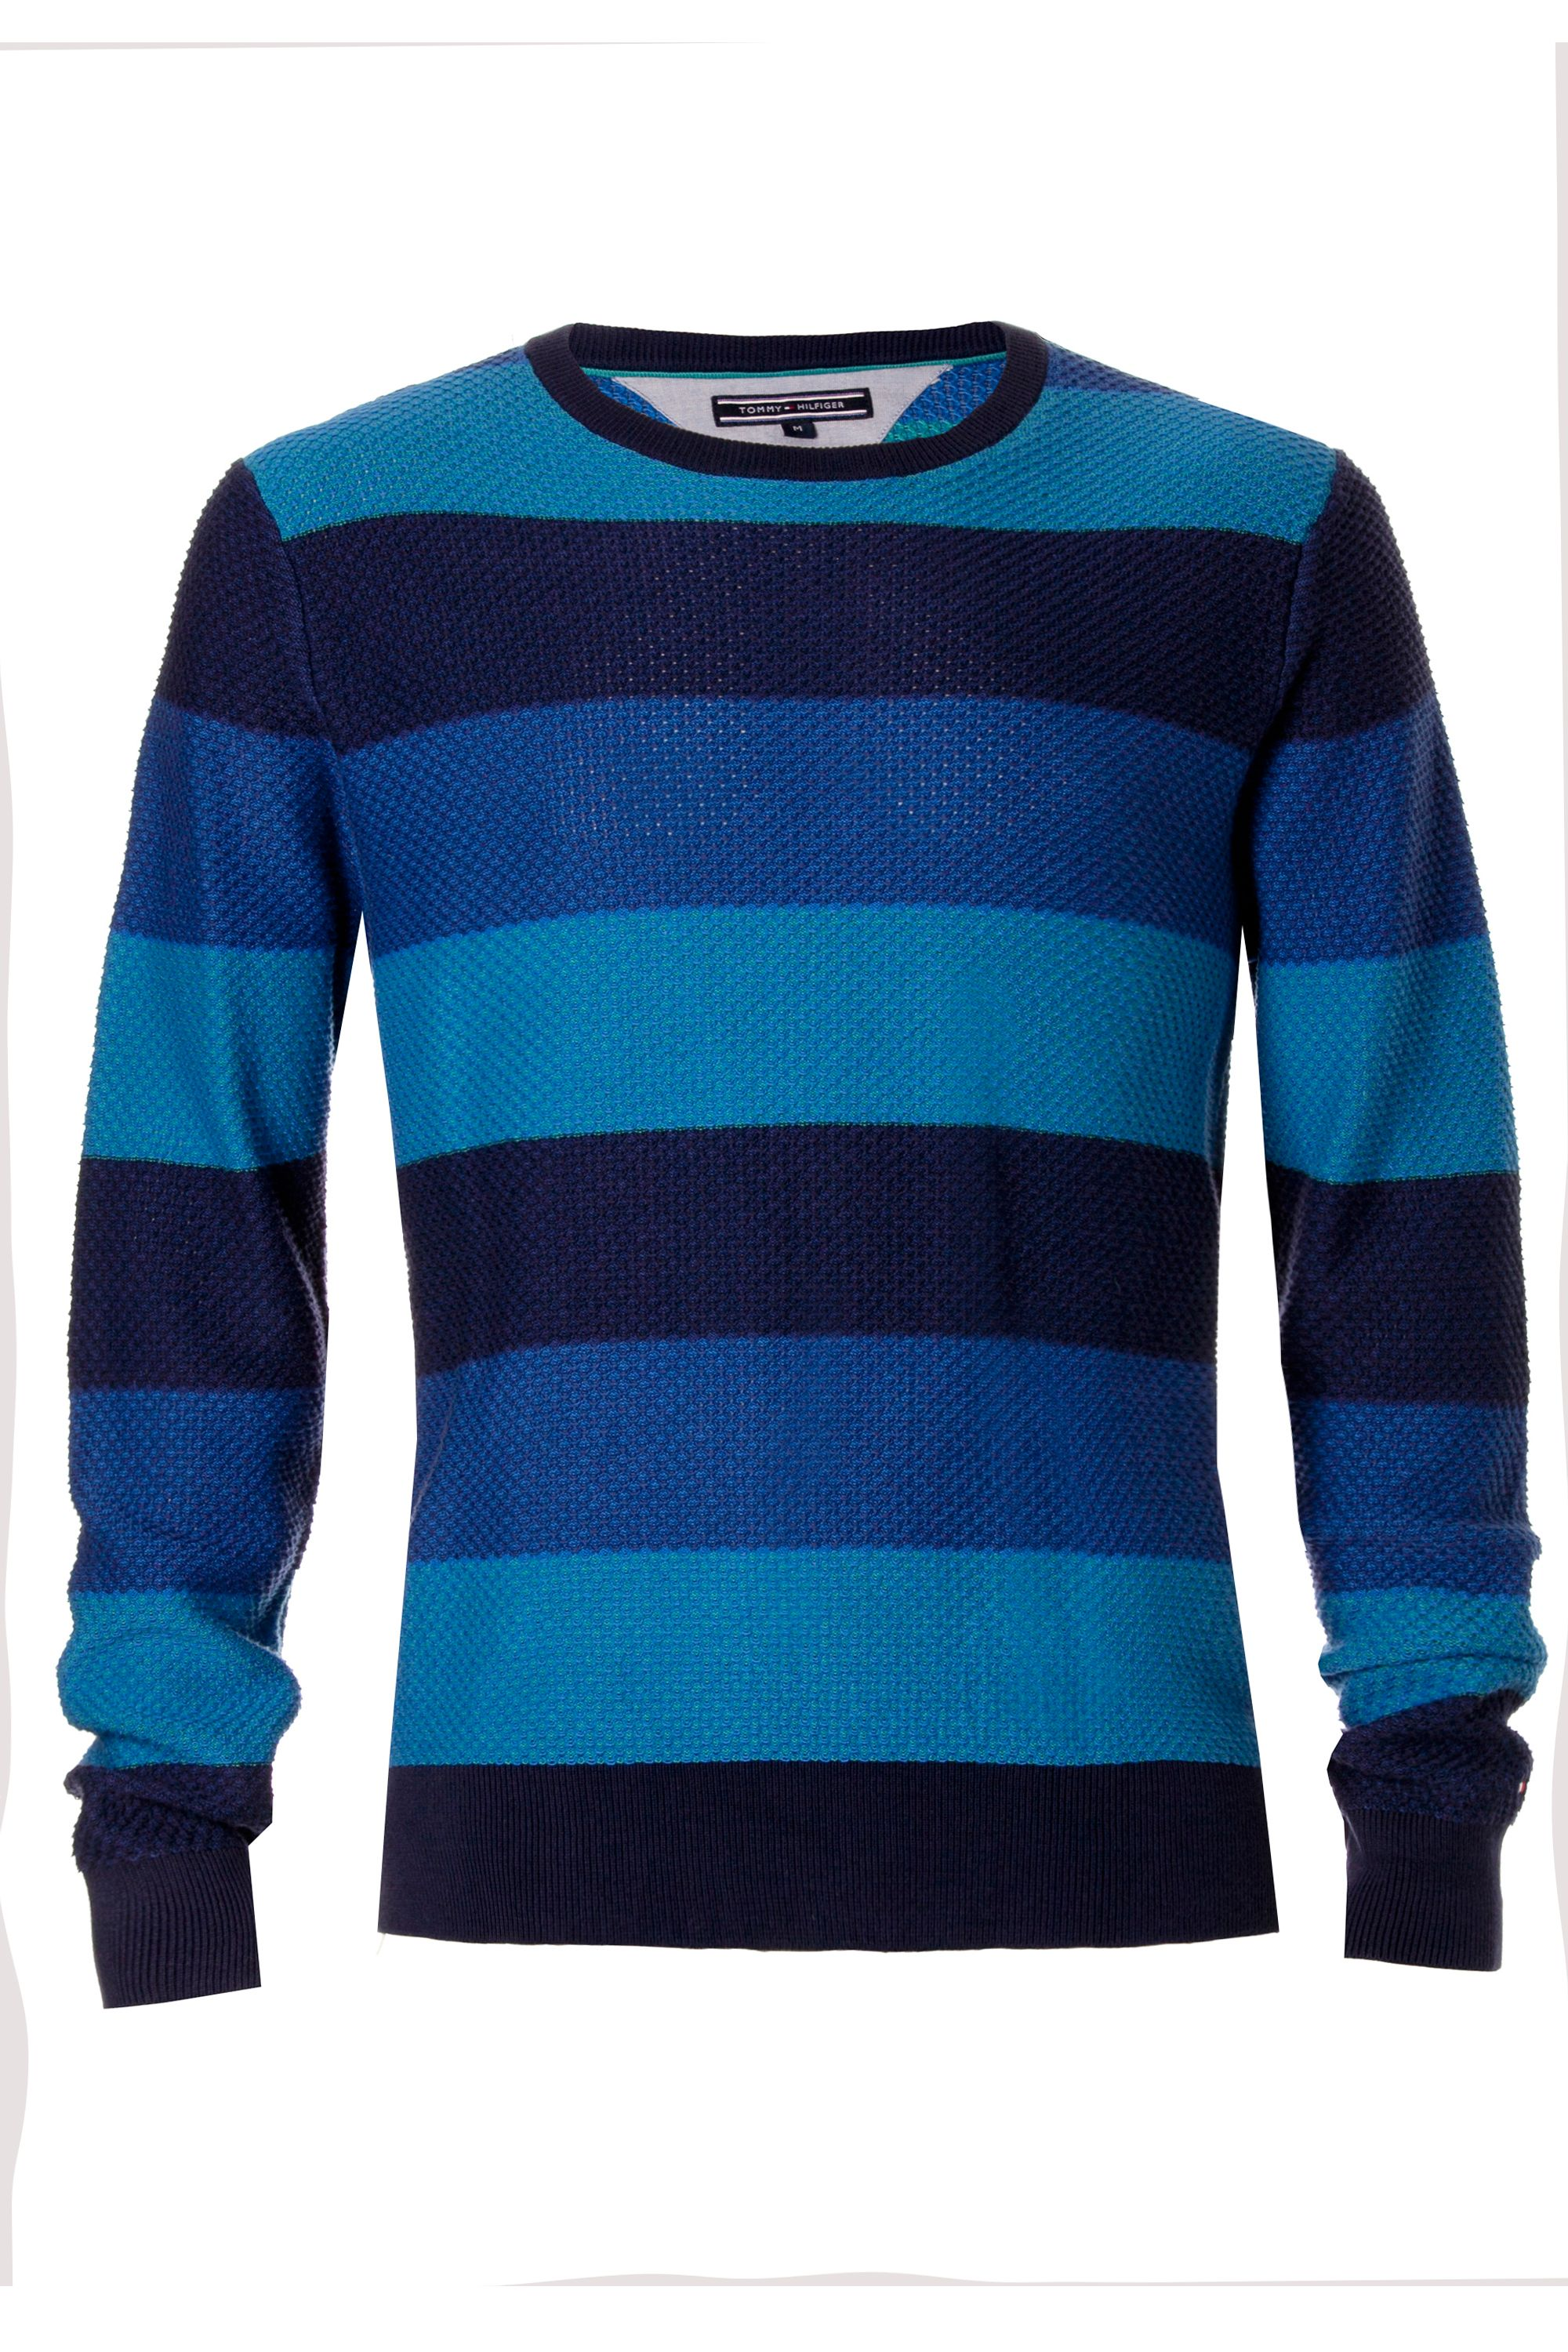 Brody crew neck jumper